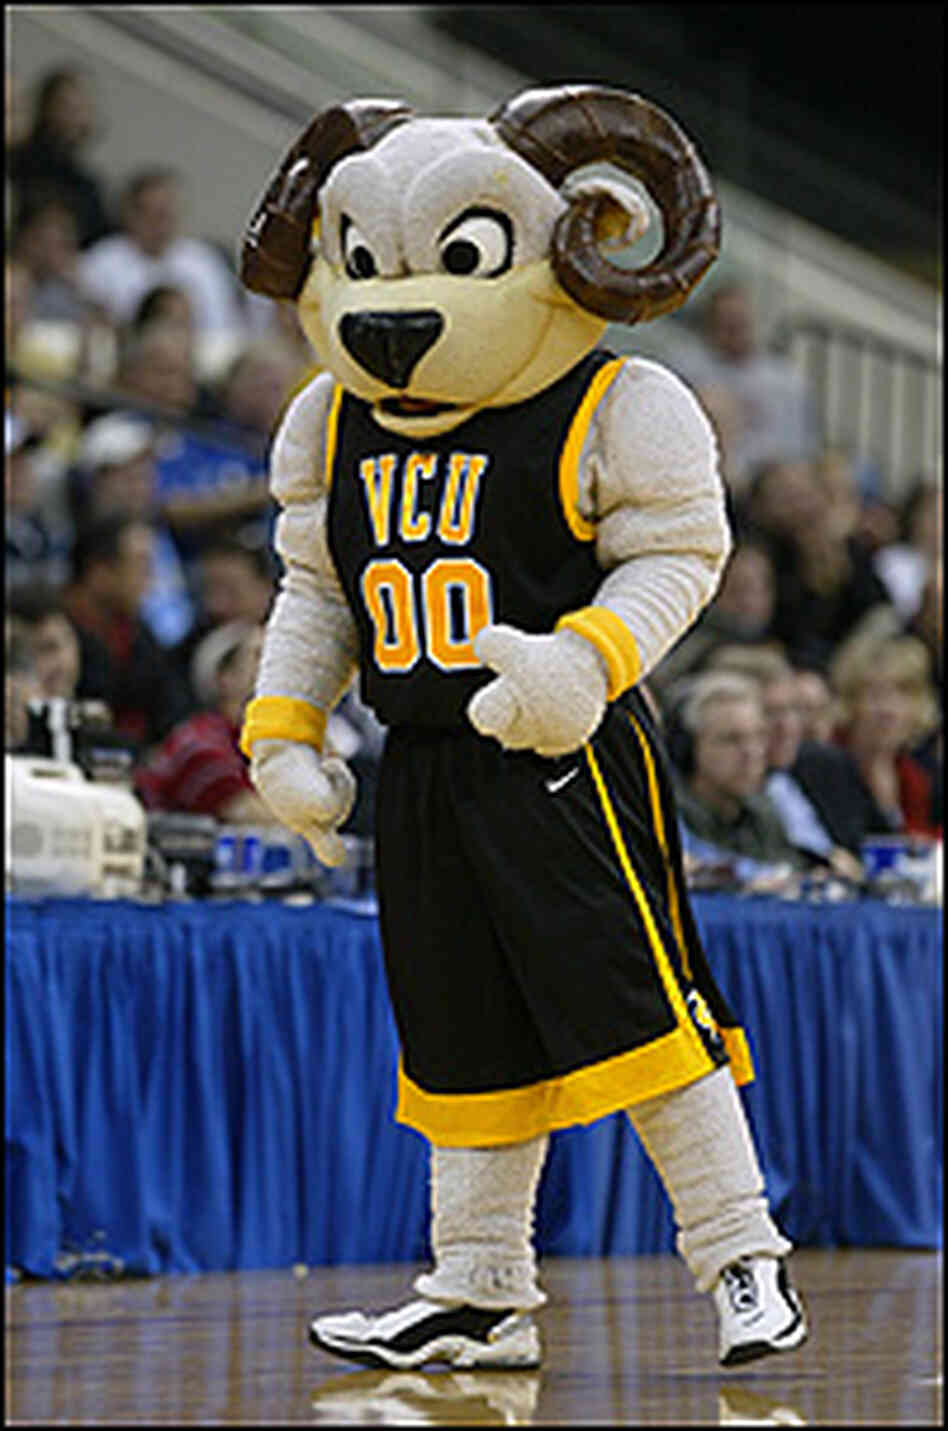 The VCU mascot, a student in a large ram costume.